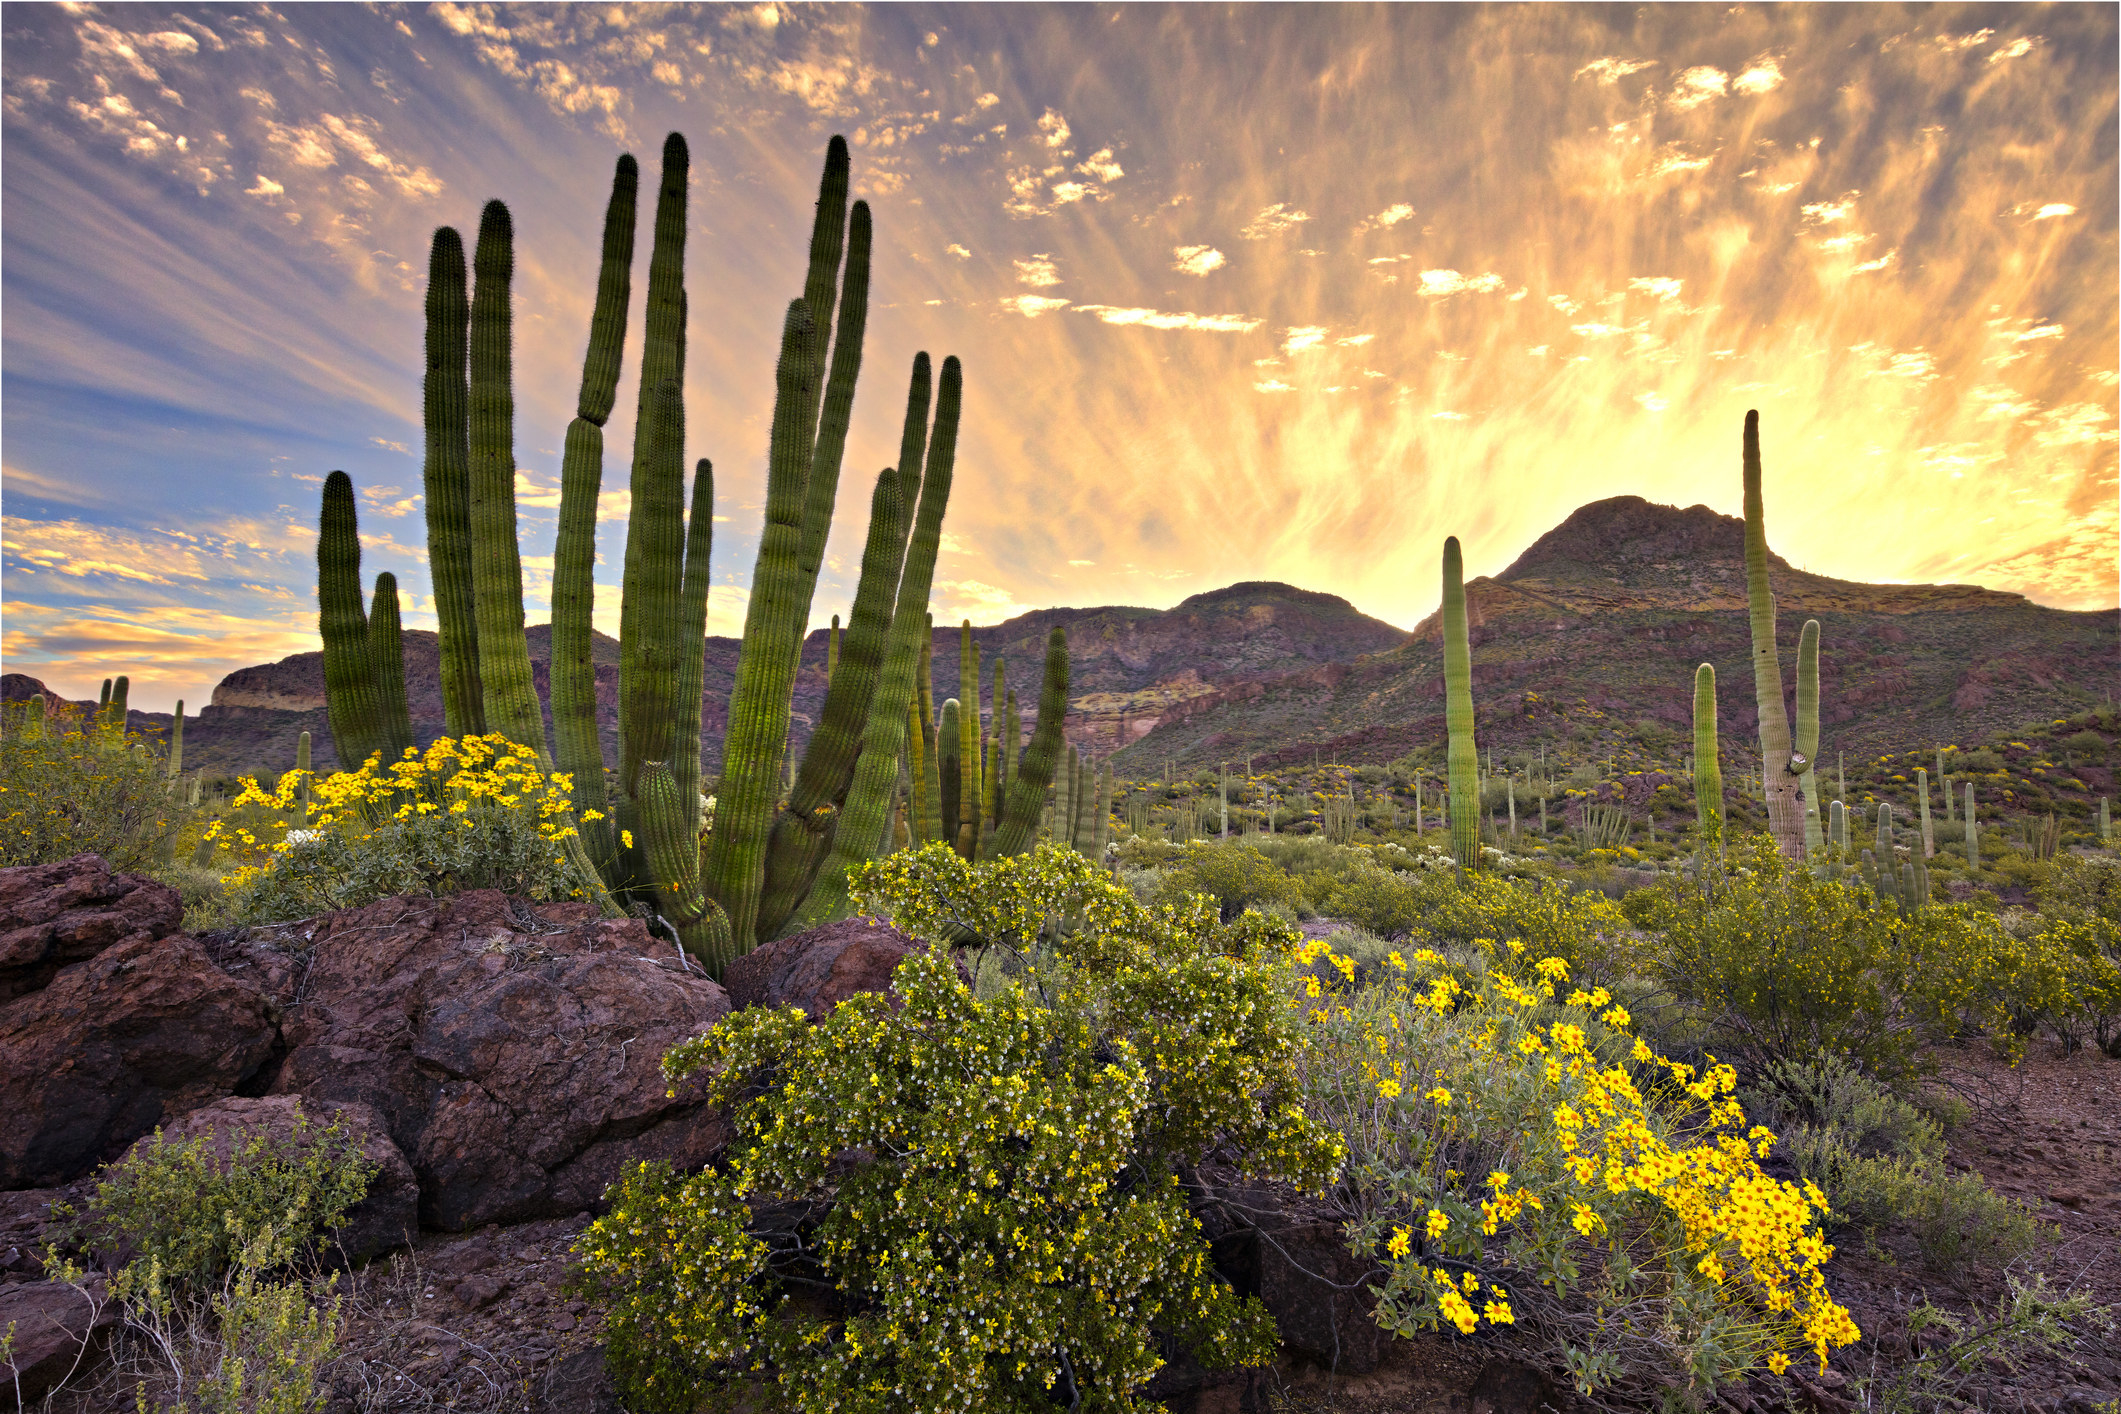 a huge cactus with multiple arms shooting straight up surrounded by wildflowers in the desert